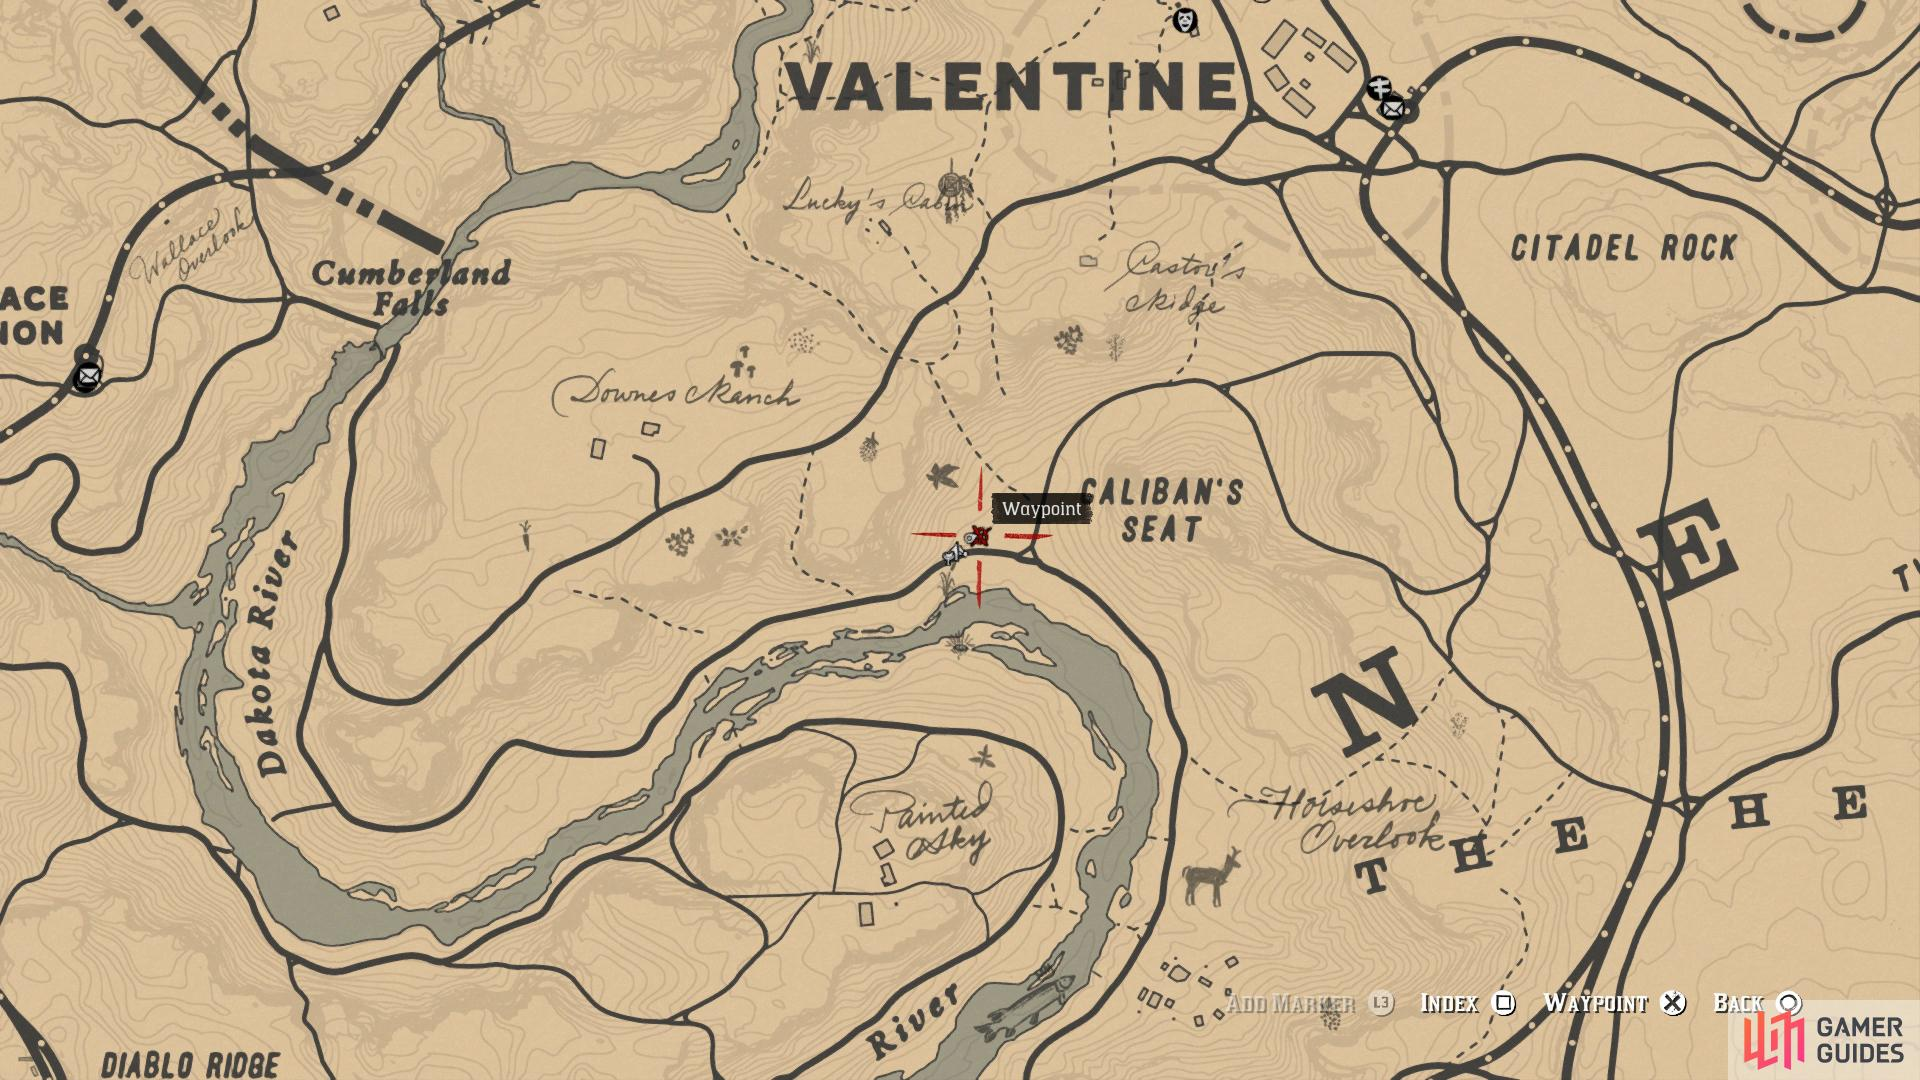 Locate Caliban's Seat to the south of Valentine